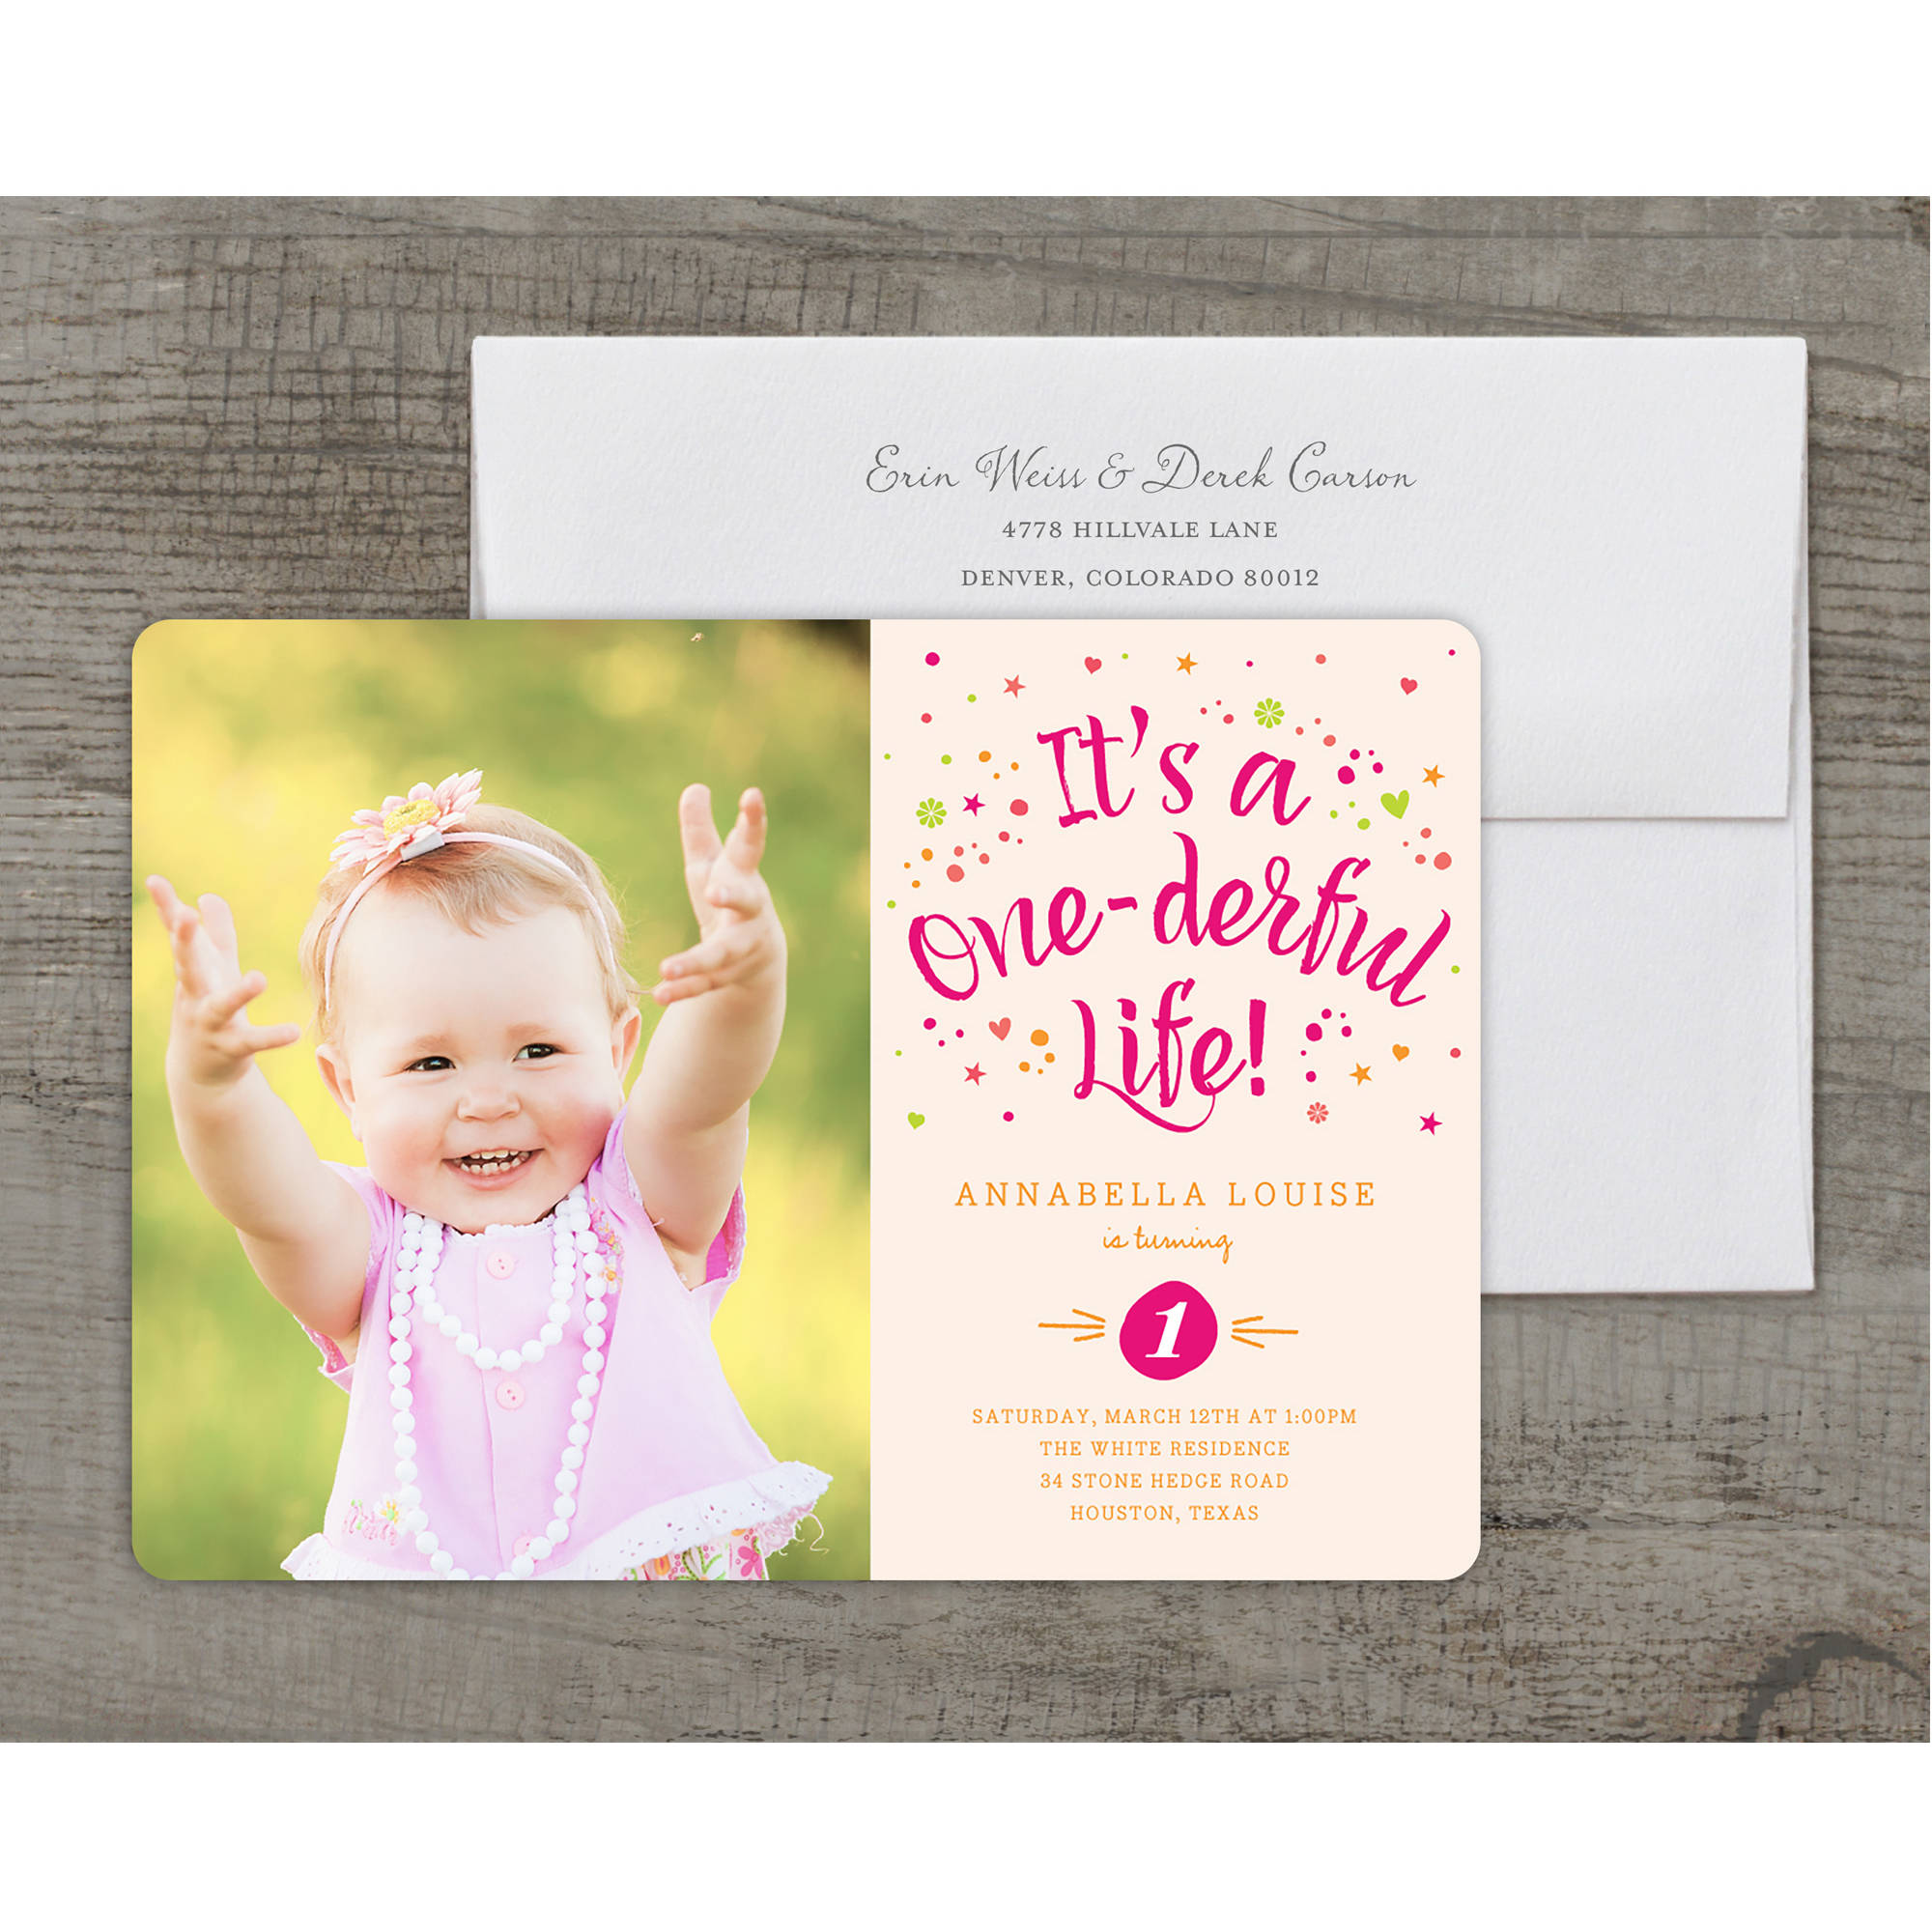 One-derful Life Deluxe Birthday First Invitation